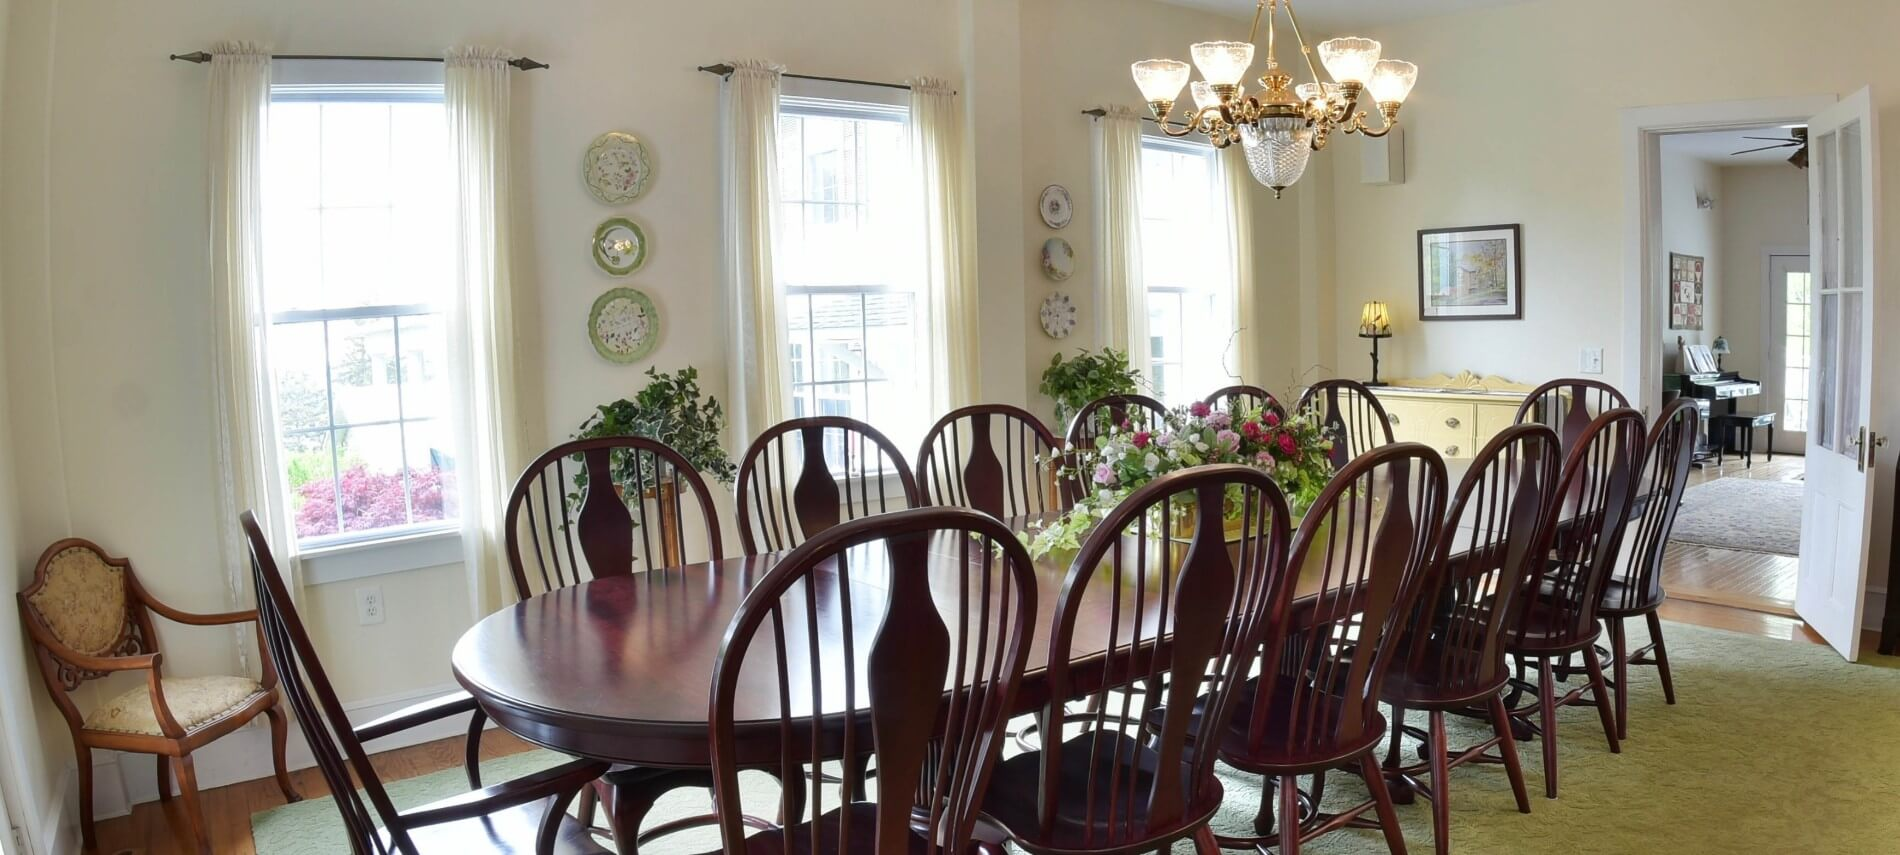 Oval table set for seven in a large dining room decorated in elegant decor.